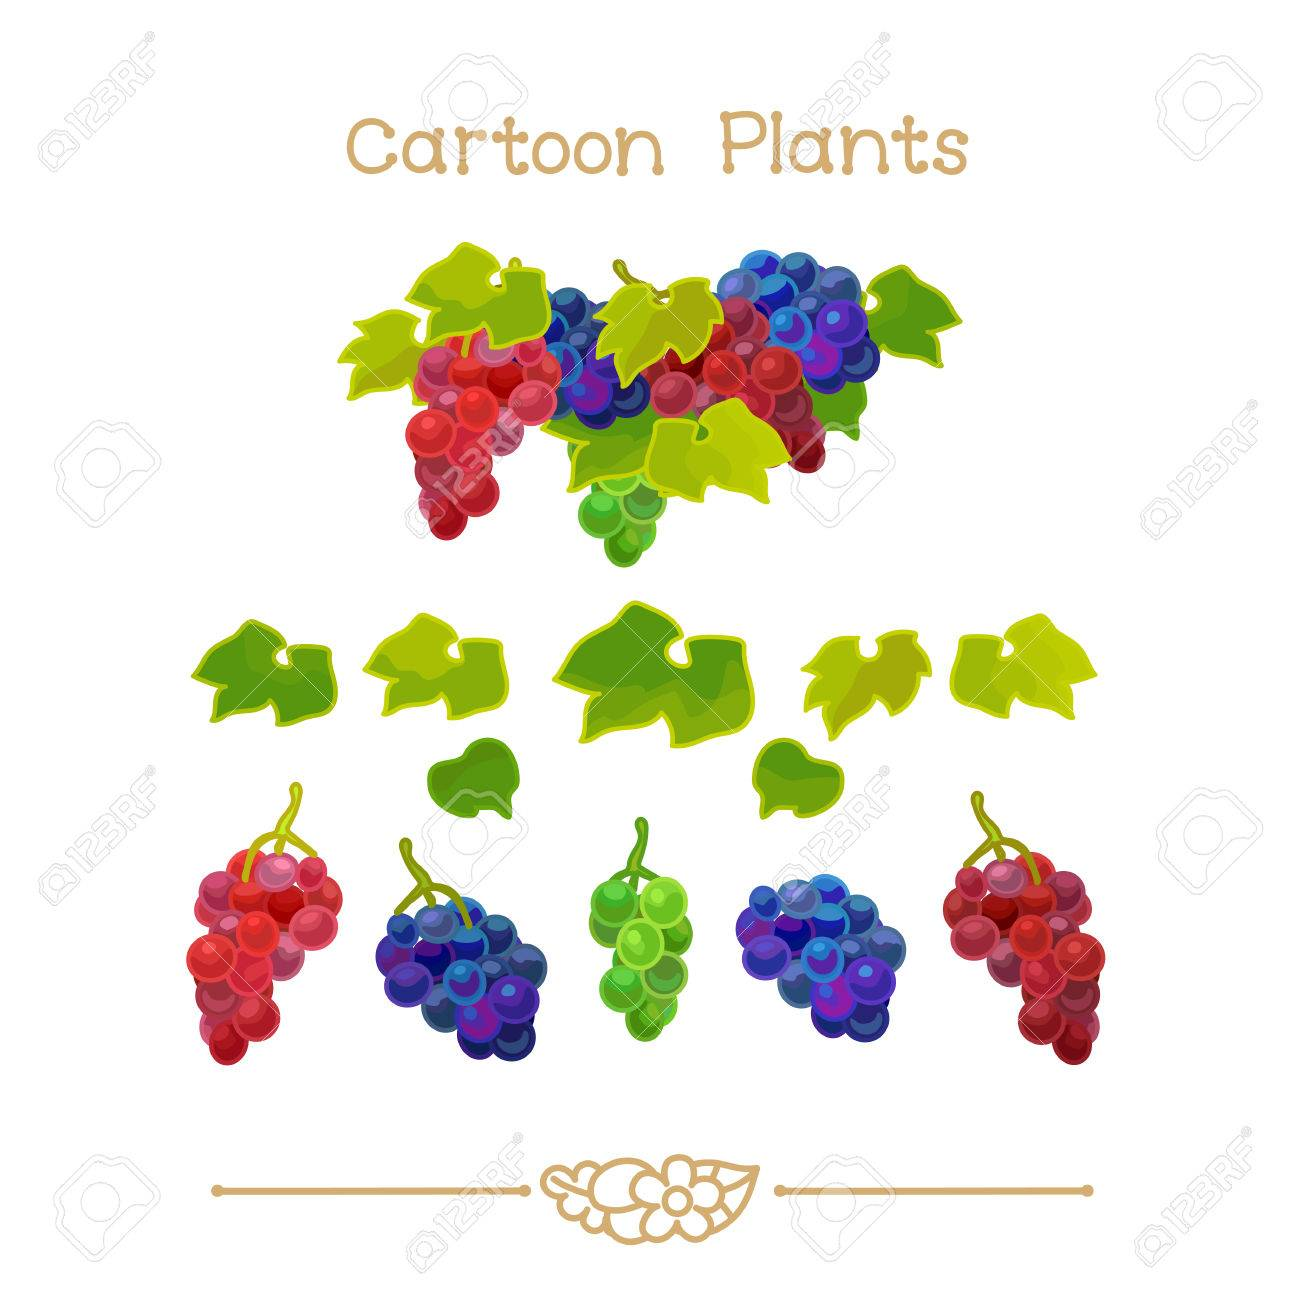 hight resolution of illustration collection cartoon plants grapevine clusters with green leafs set clipart isolated on transparent